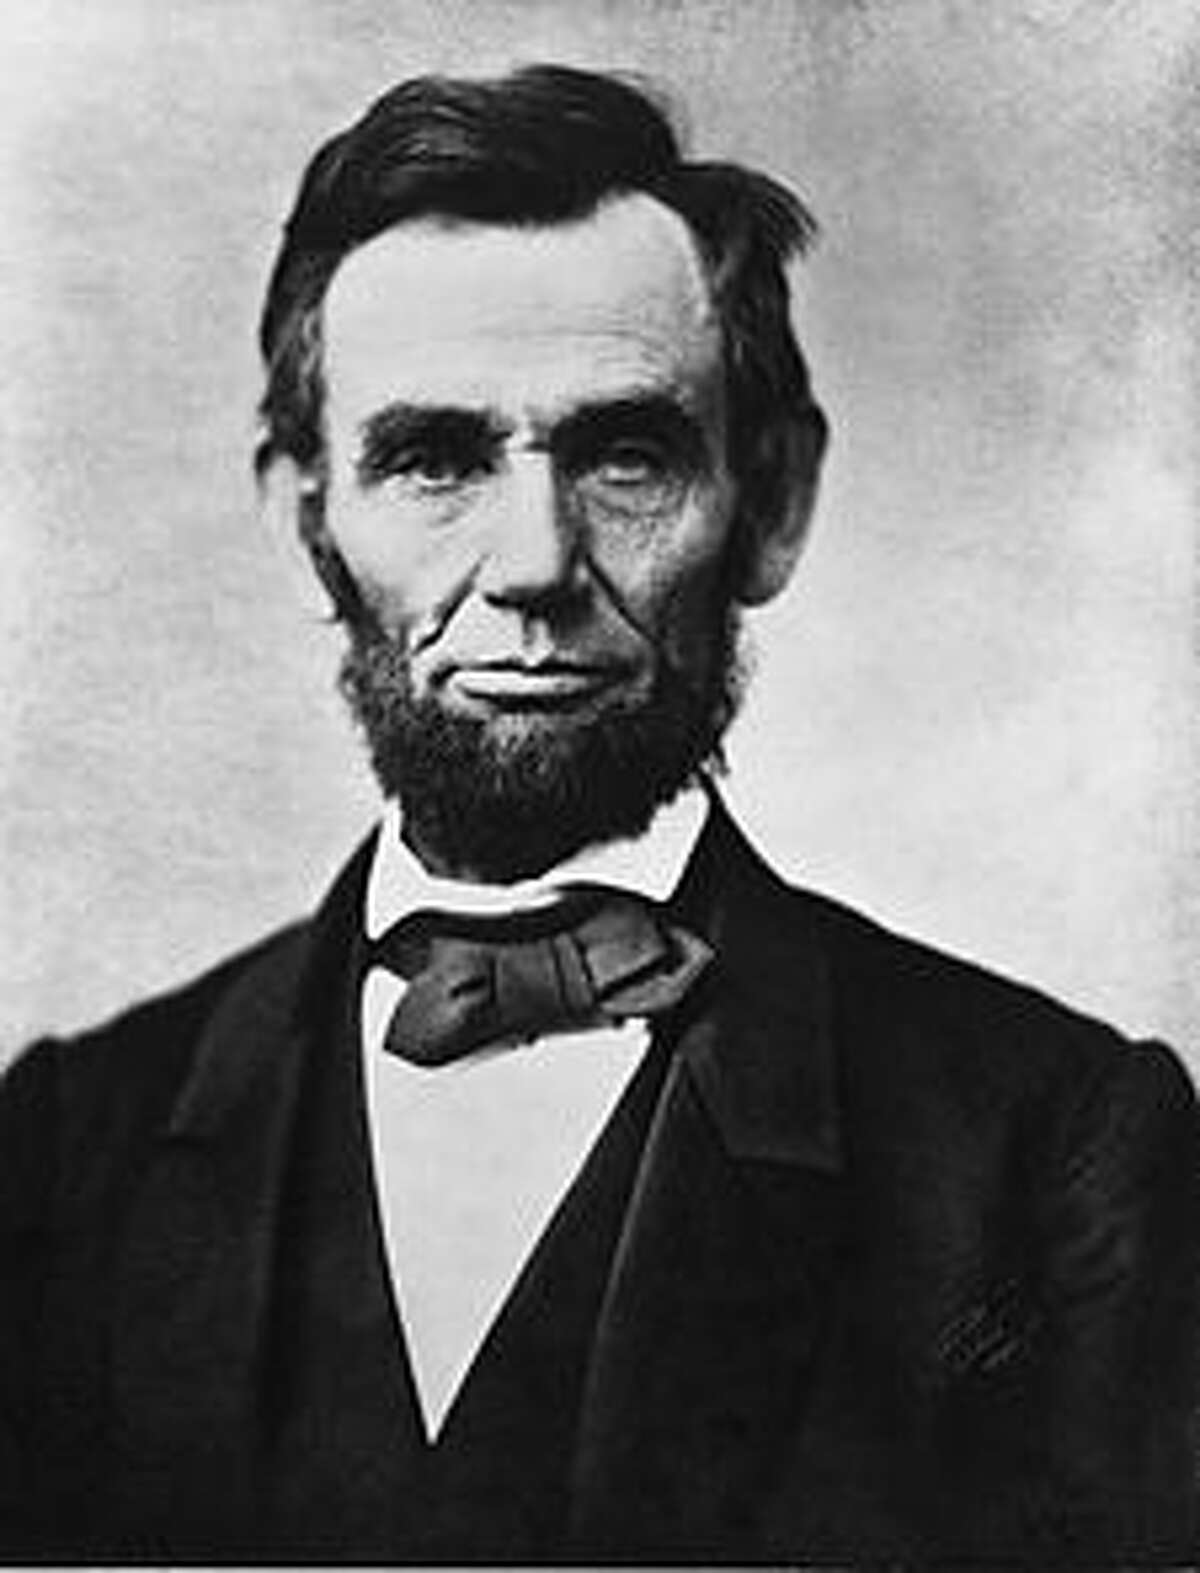 Abe Lincoln.